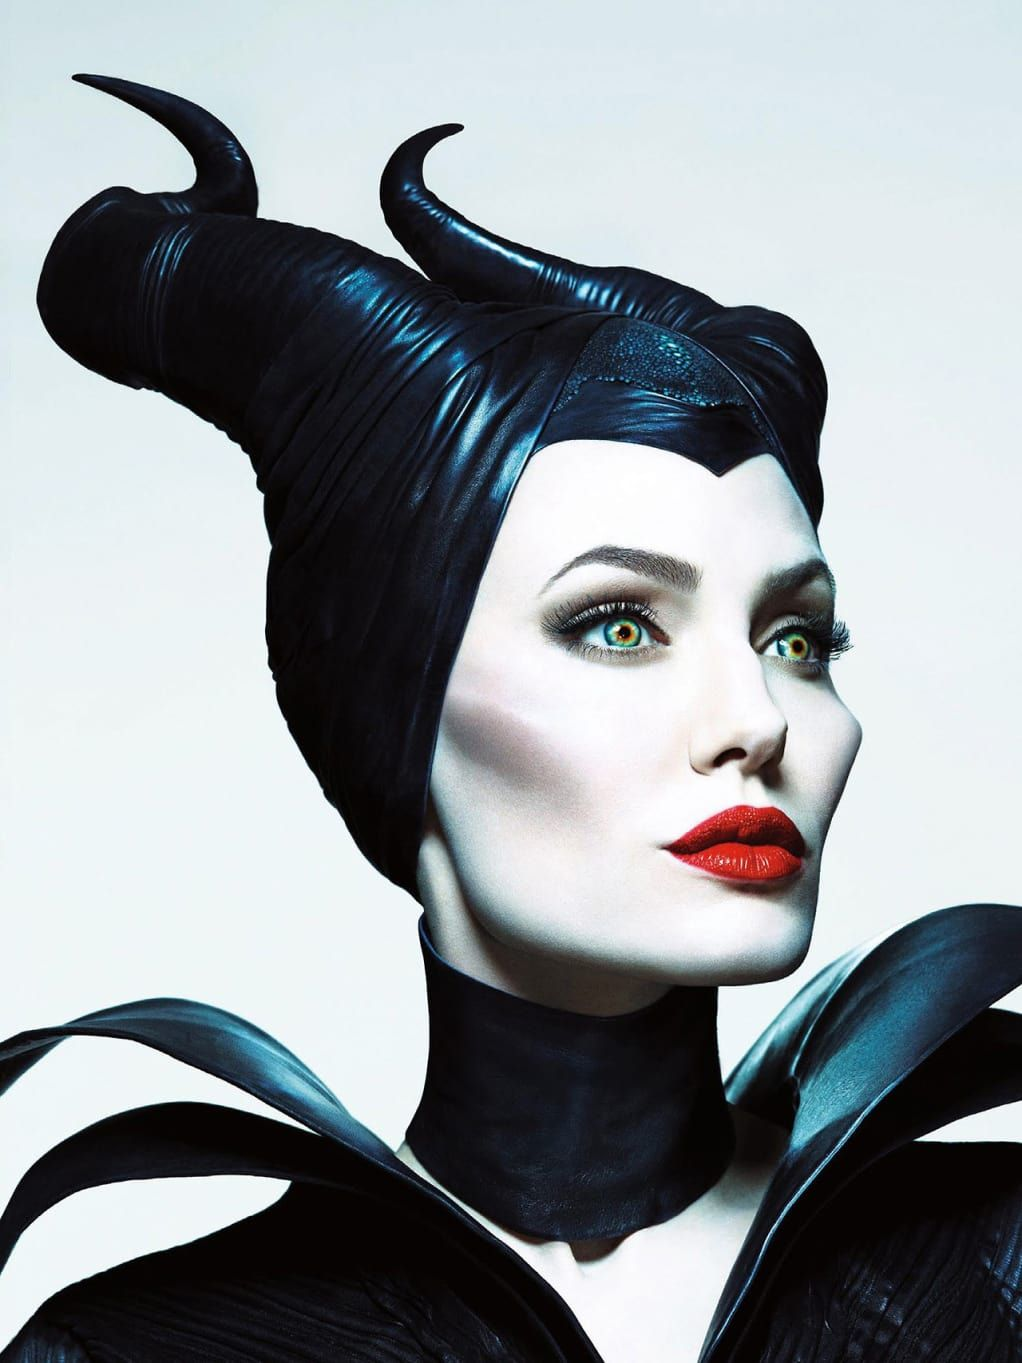 Angelina Jolie's Makeup Artist on Sculpting Cheekbones: How to Enhance Yours | Beautygeeks